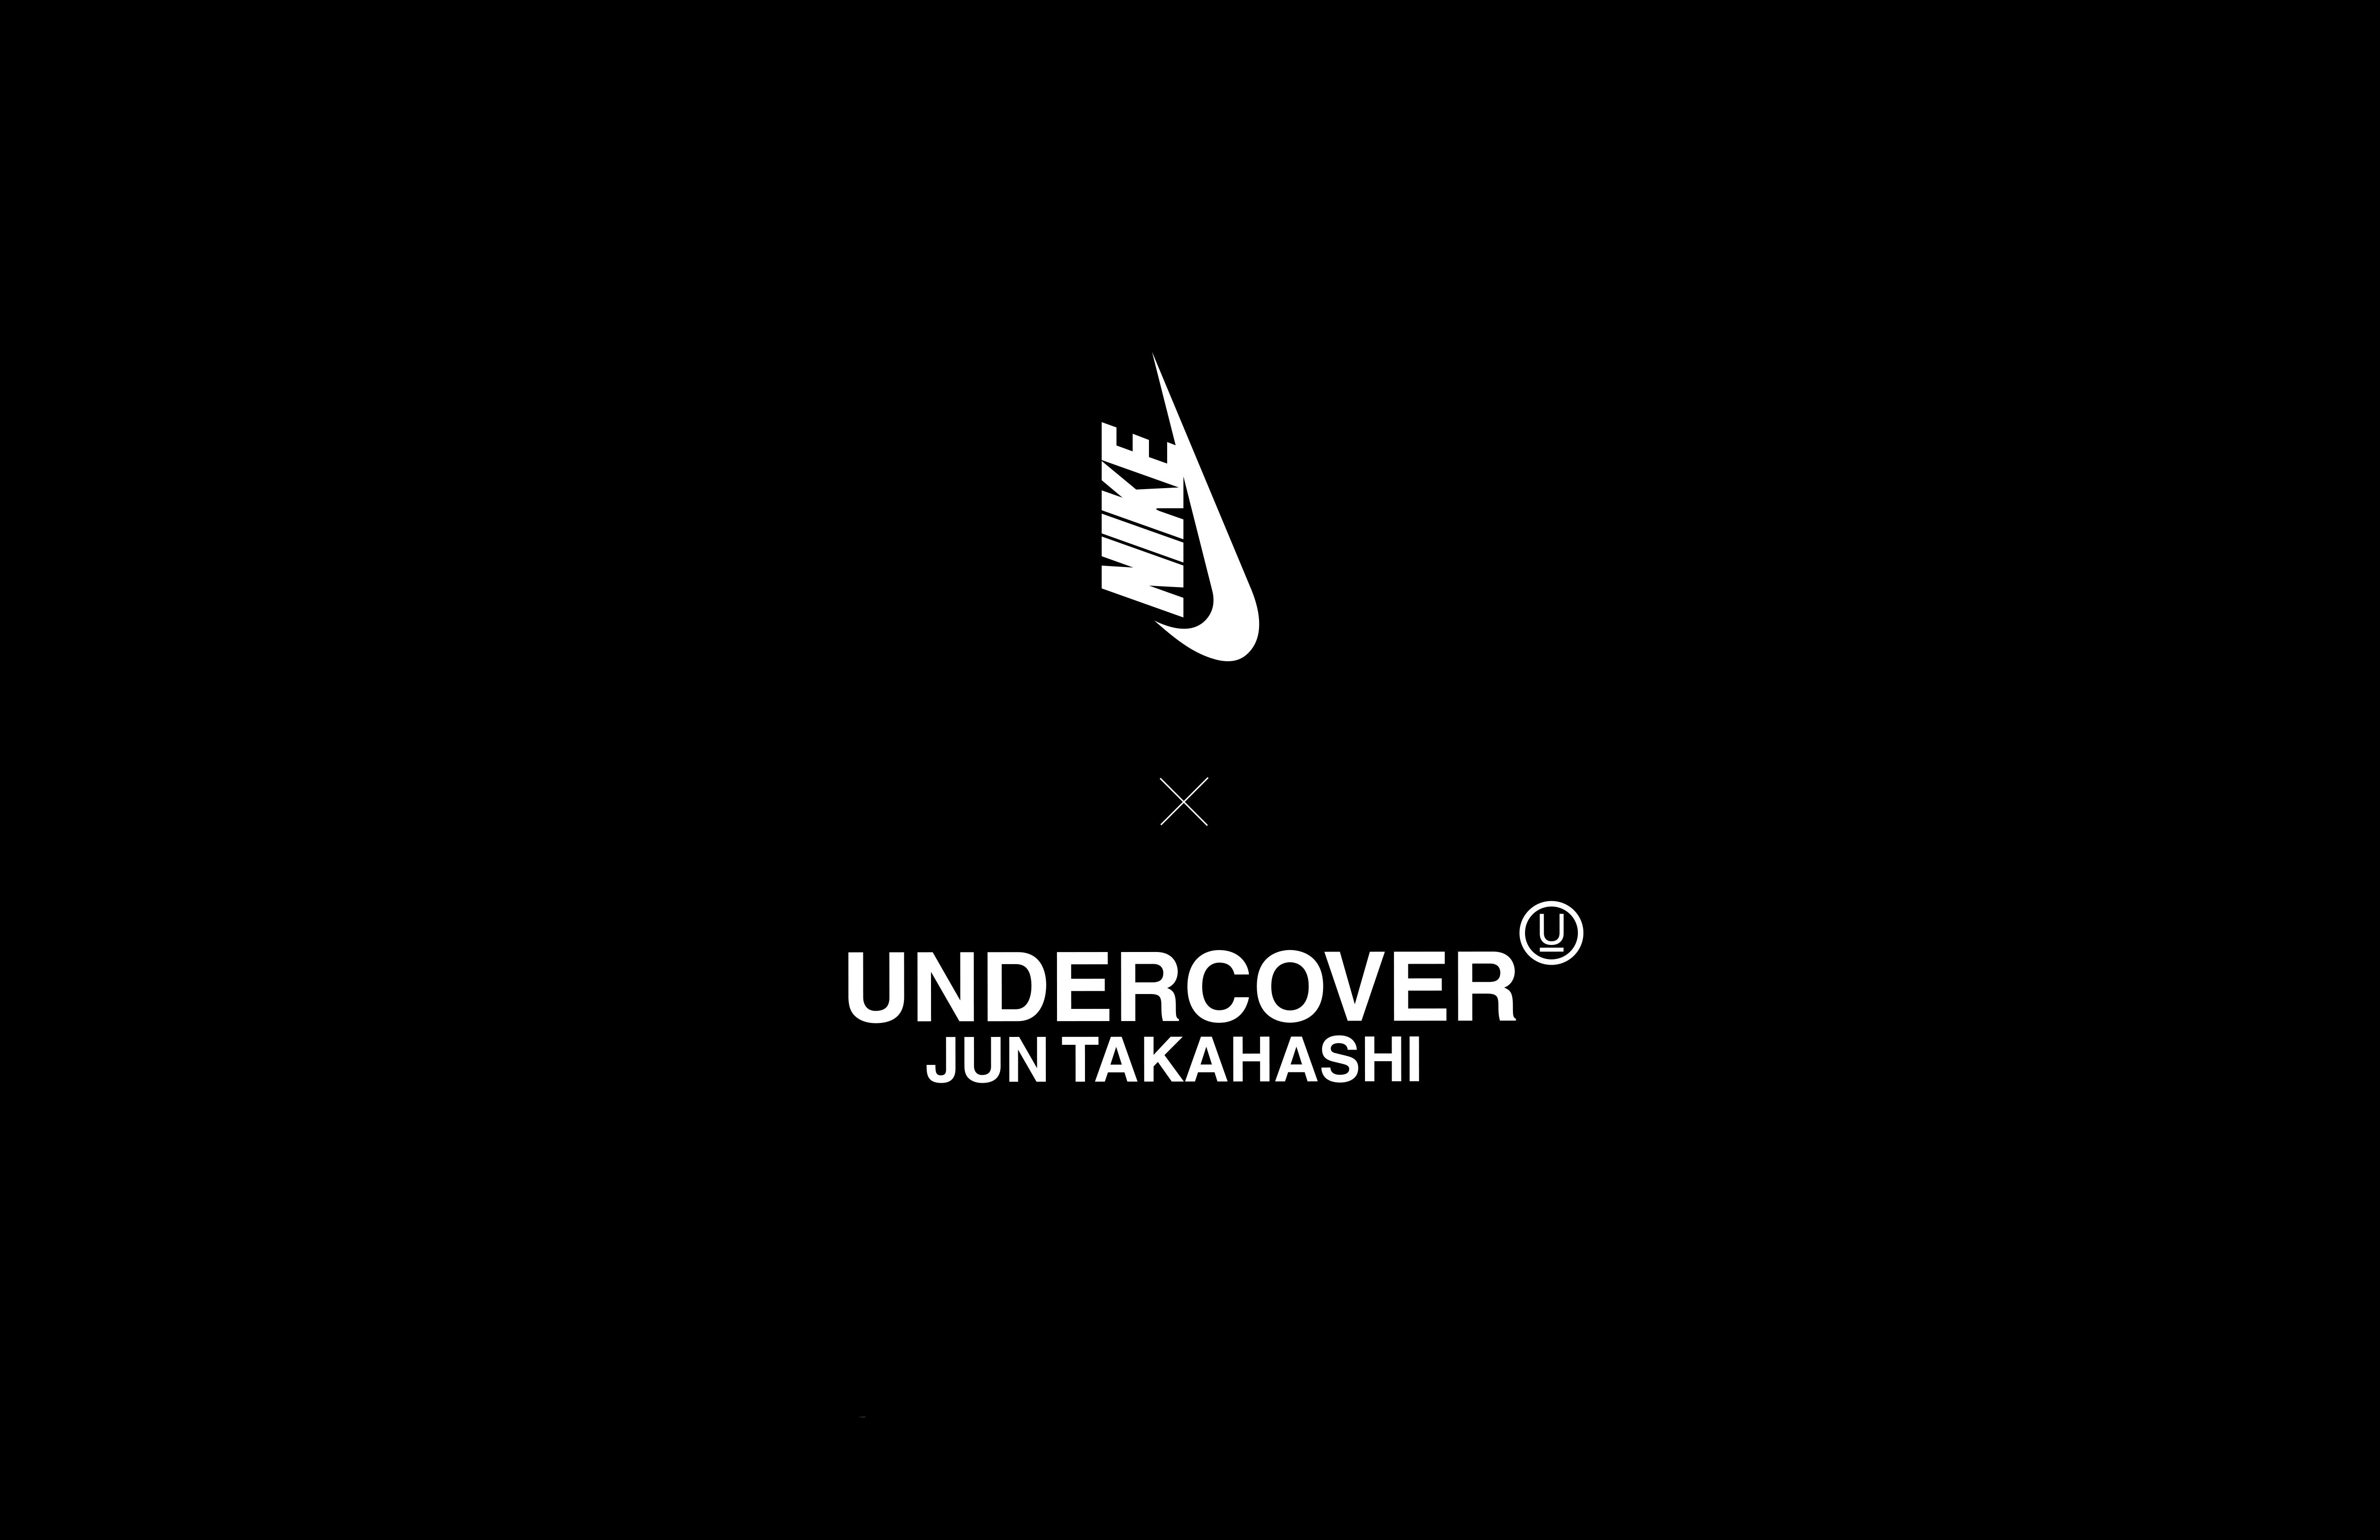 Undercover Logo - Tag: Undercover